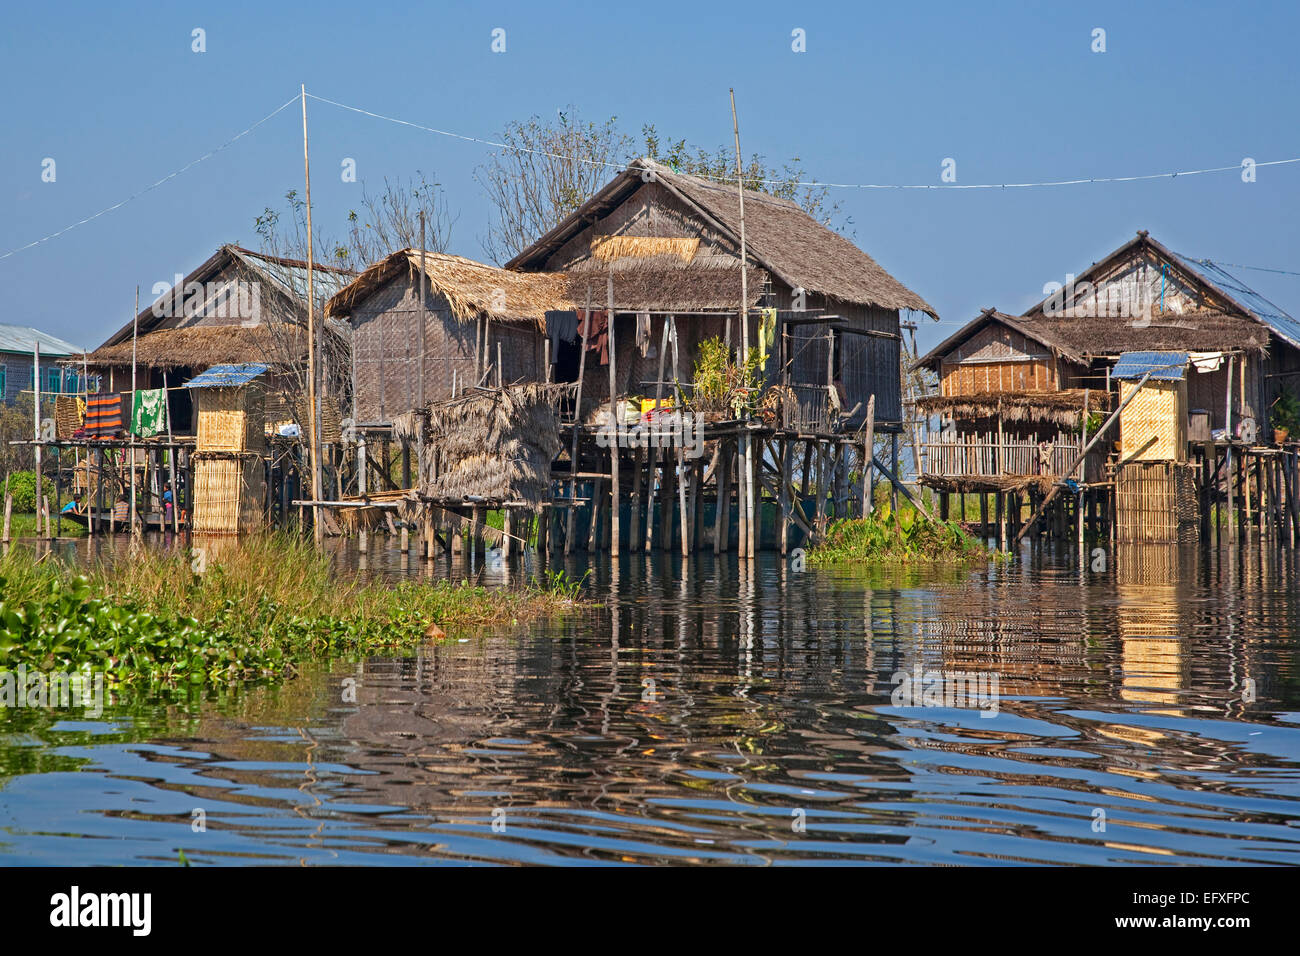 Intha lakeside village with traditional bamboo houses on stilts in Inle Lake, Nyaungshwe, Shan State, Myanmar / - Stock Image